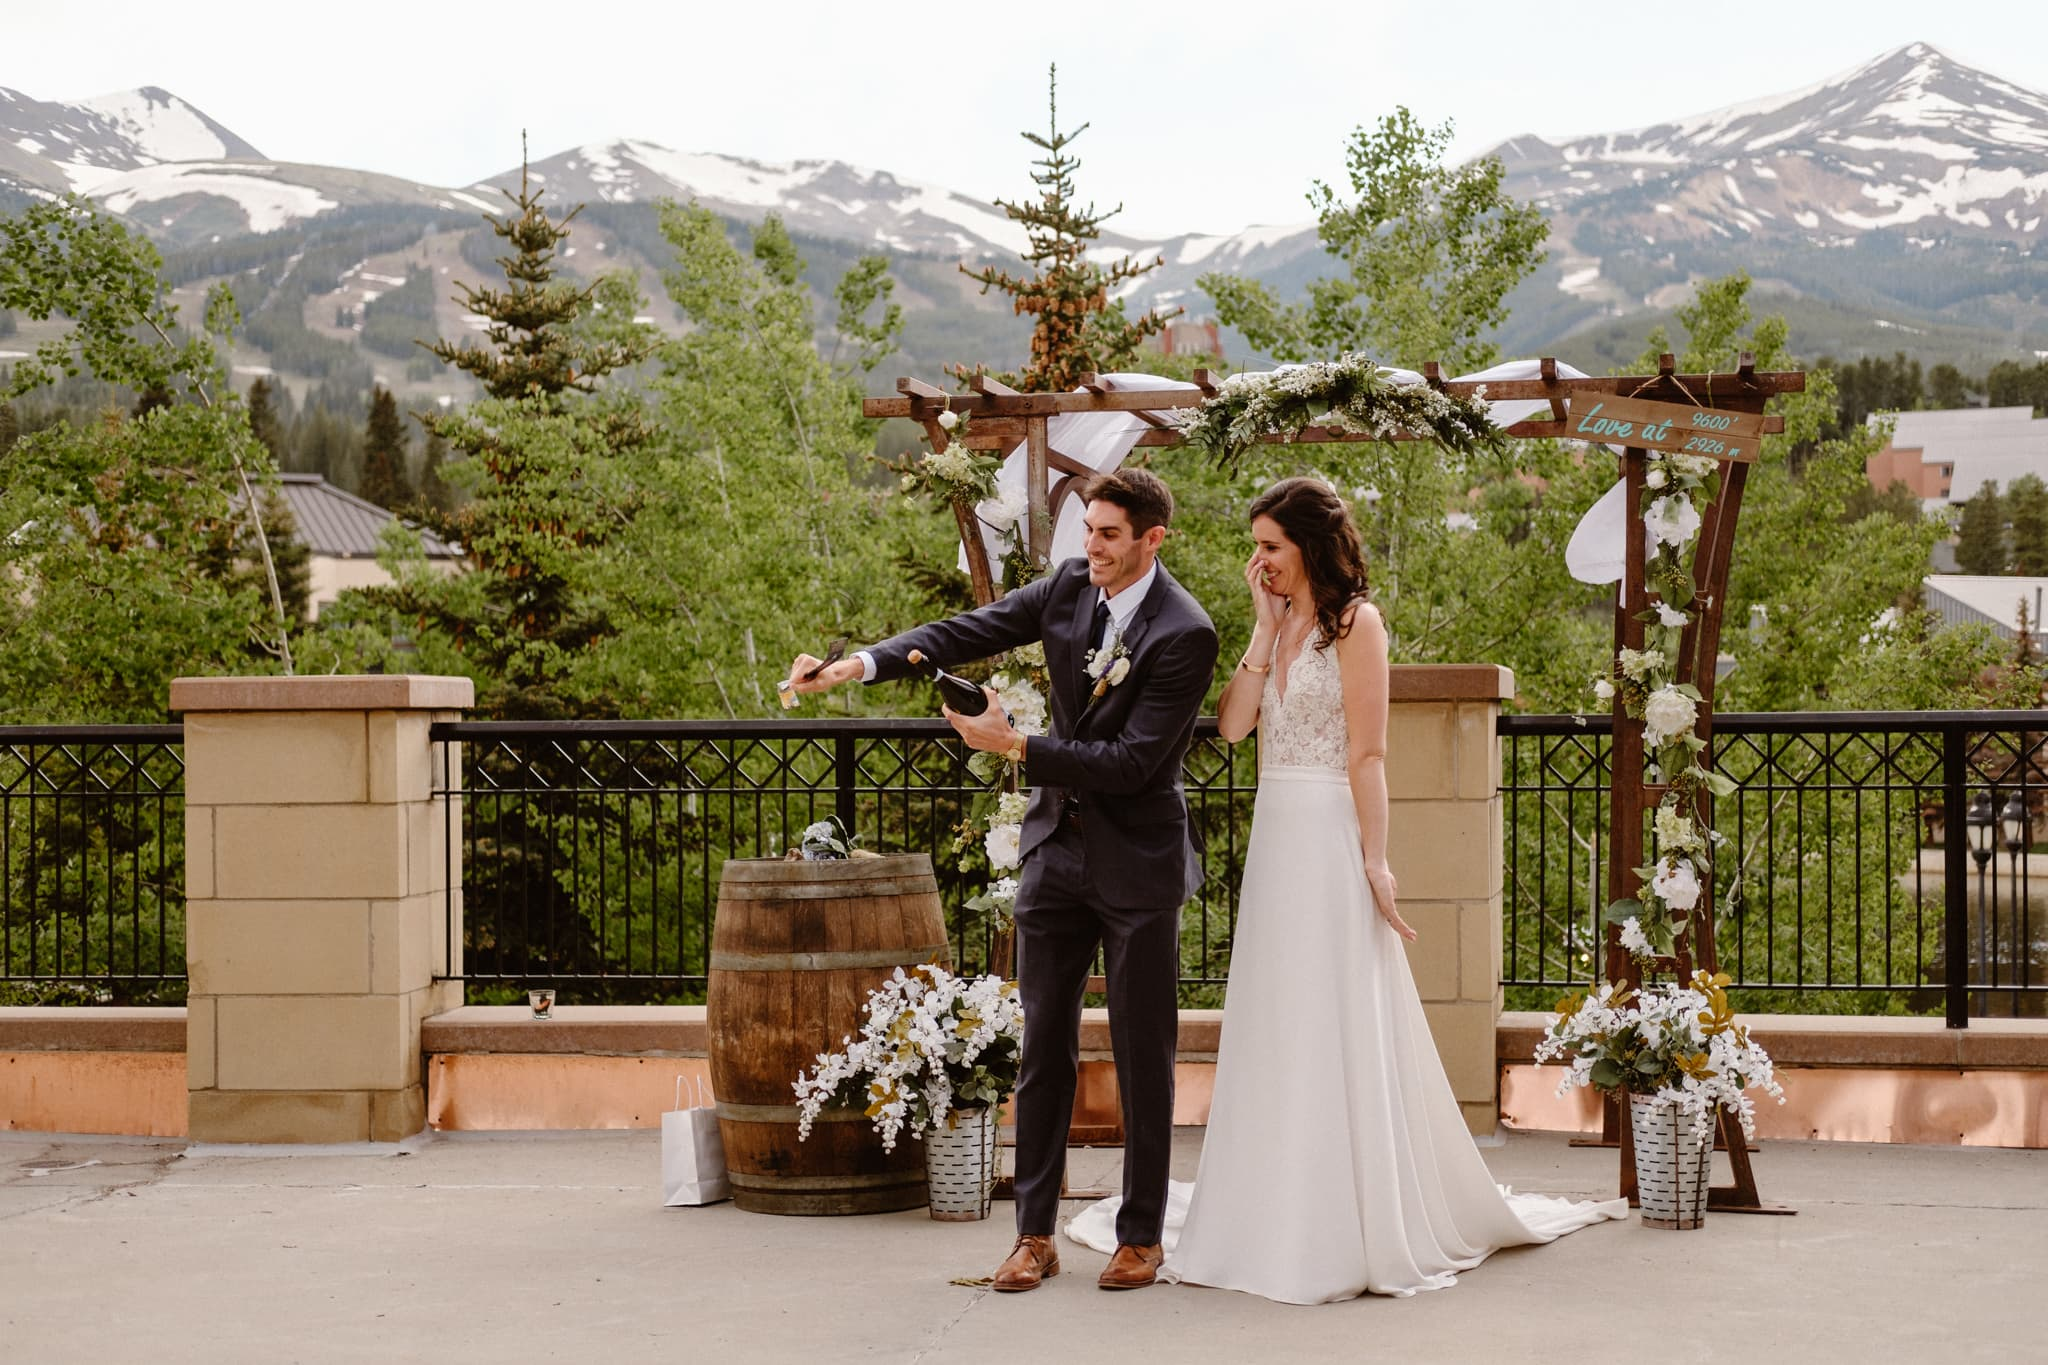 Groom attempting to pop champagne bottle with crowbar, bride cringing watching him, Main Street Station wedding venue in Breckenridge, Colorado wedding photographer